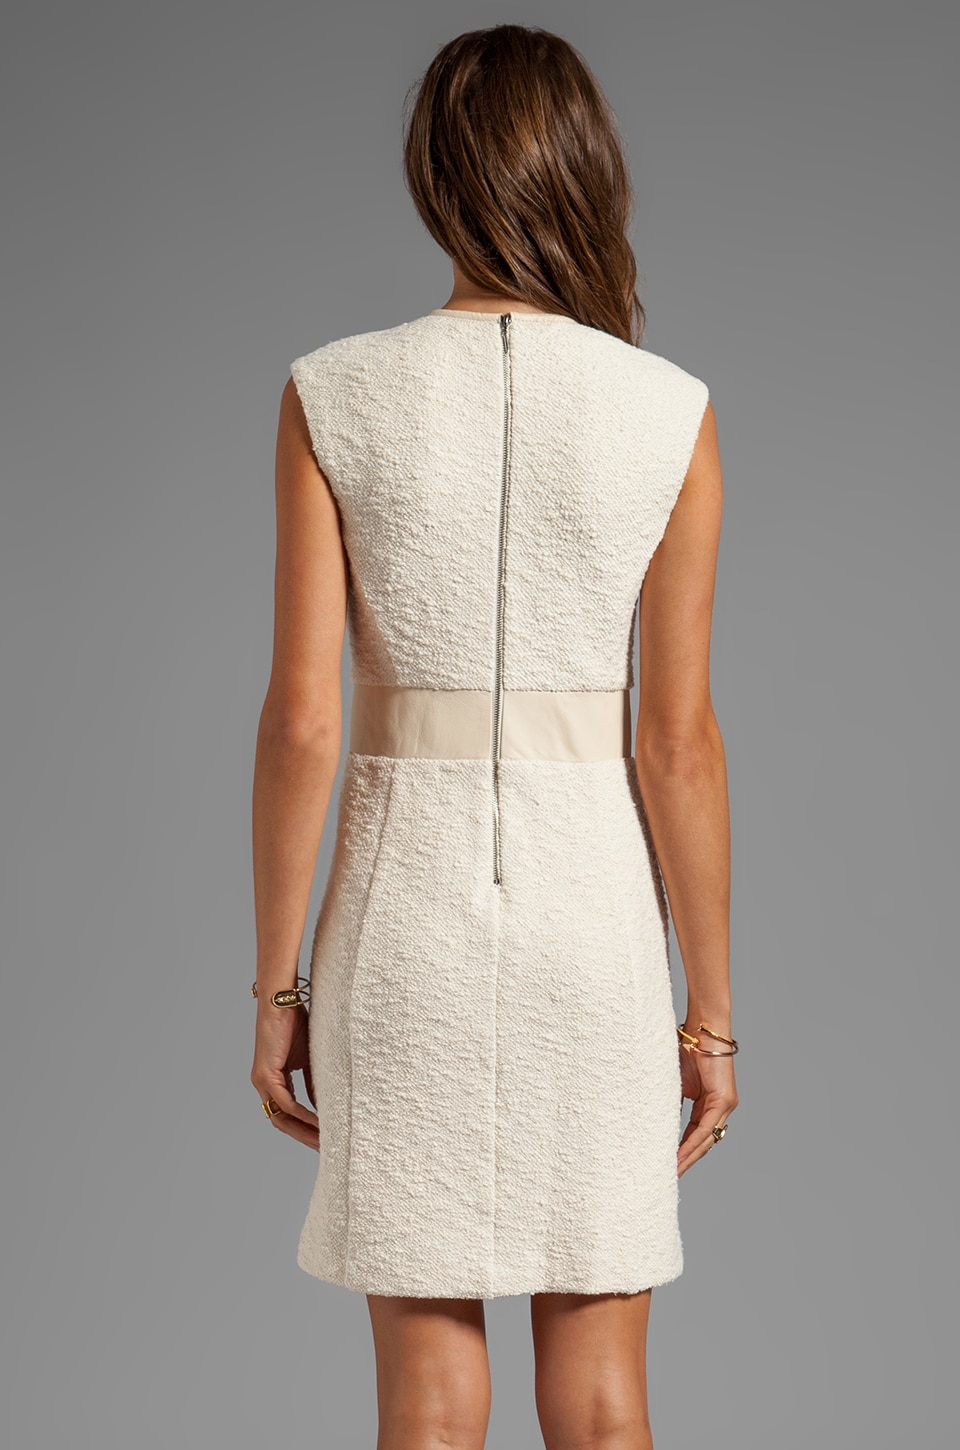 Rebecca Taylor Boucle Detailed Sheath Dress in Cream | REVOLVE